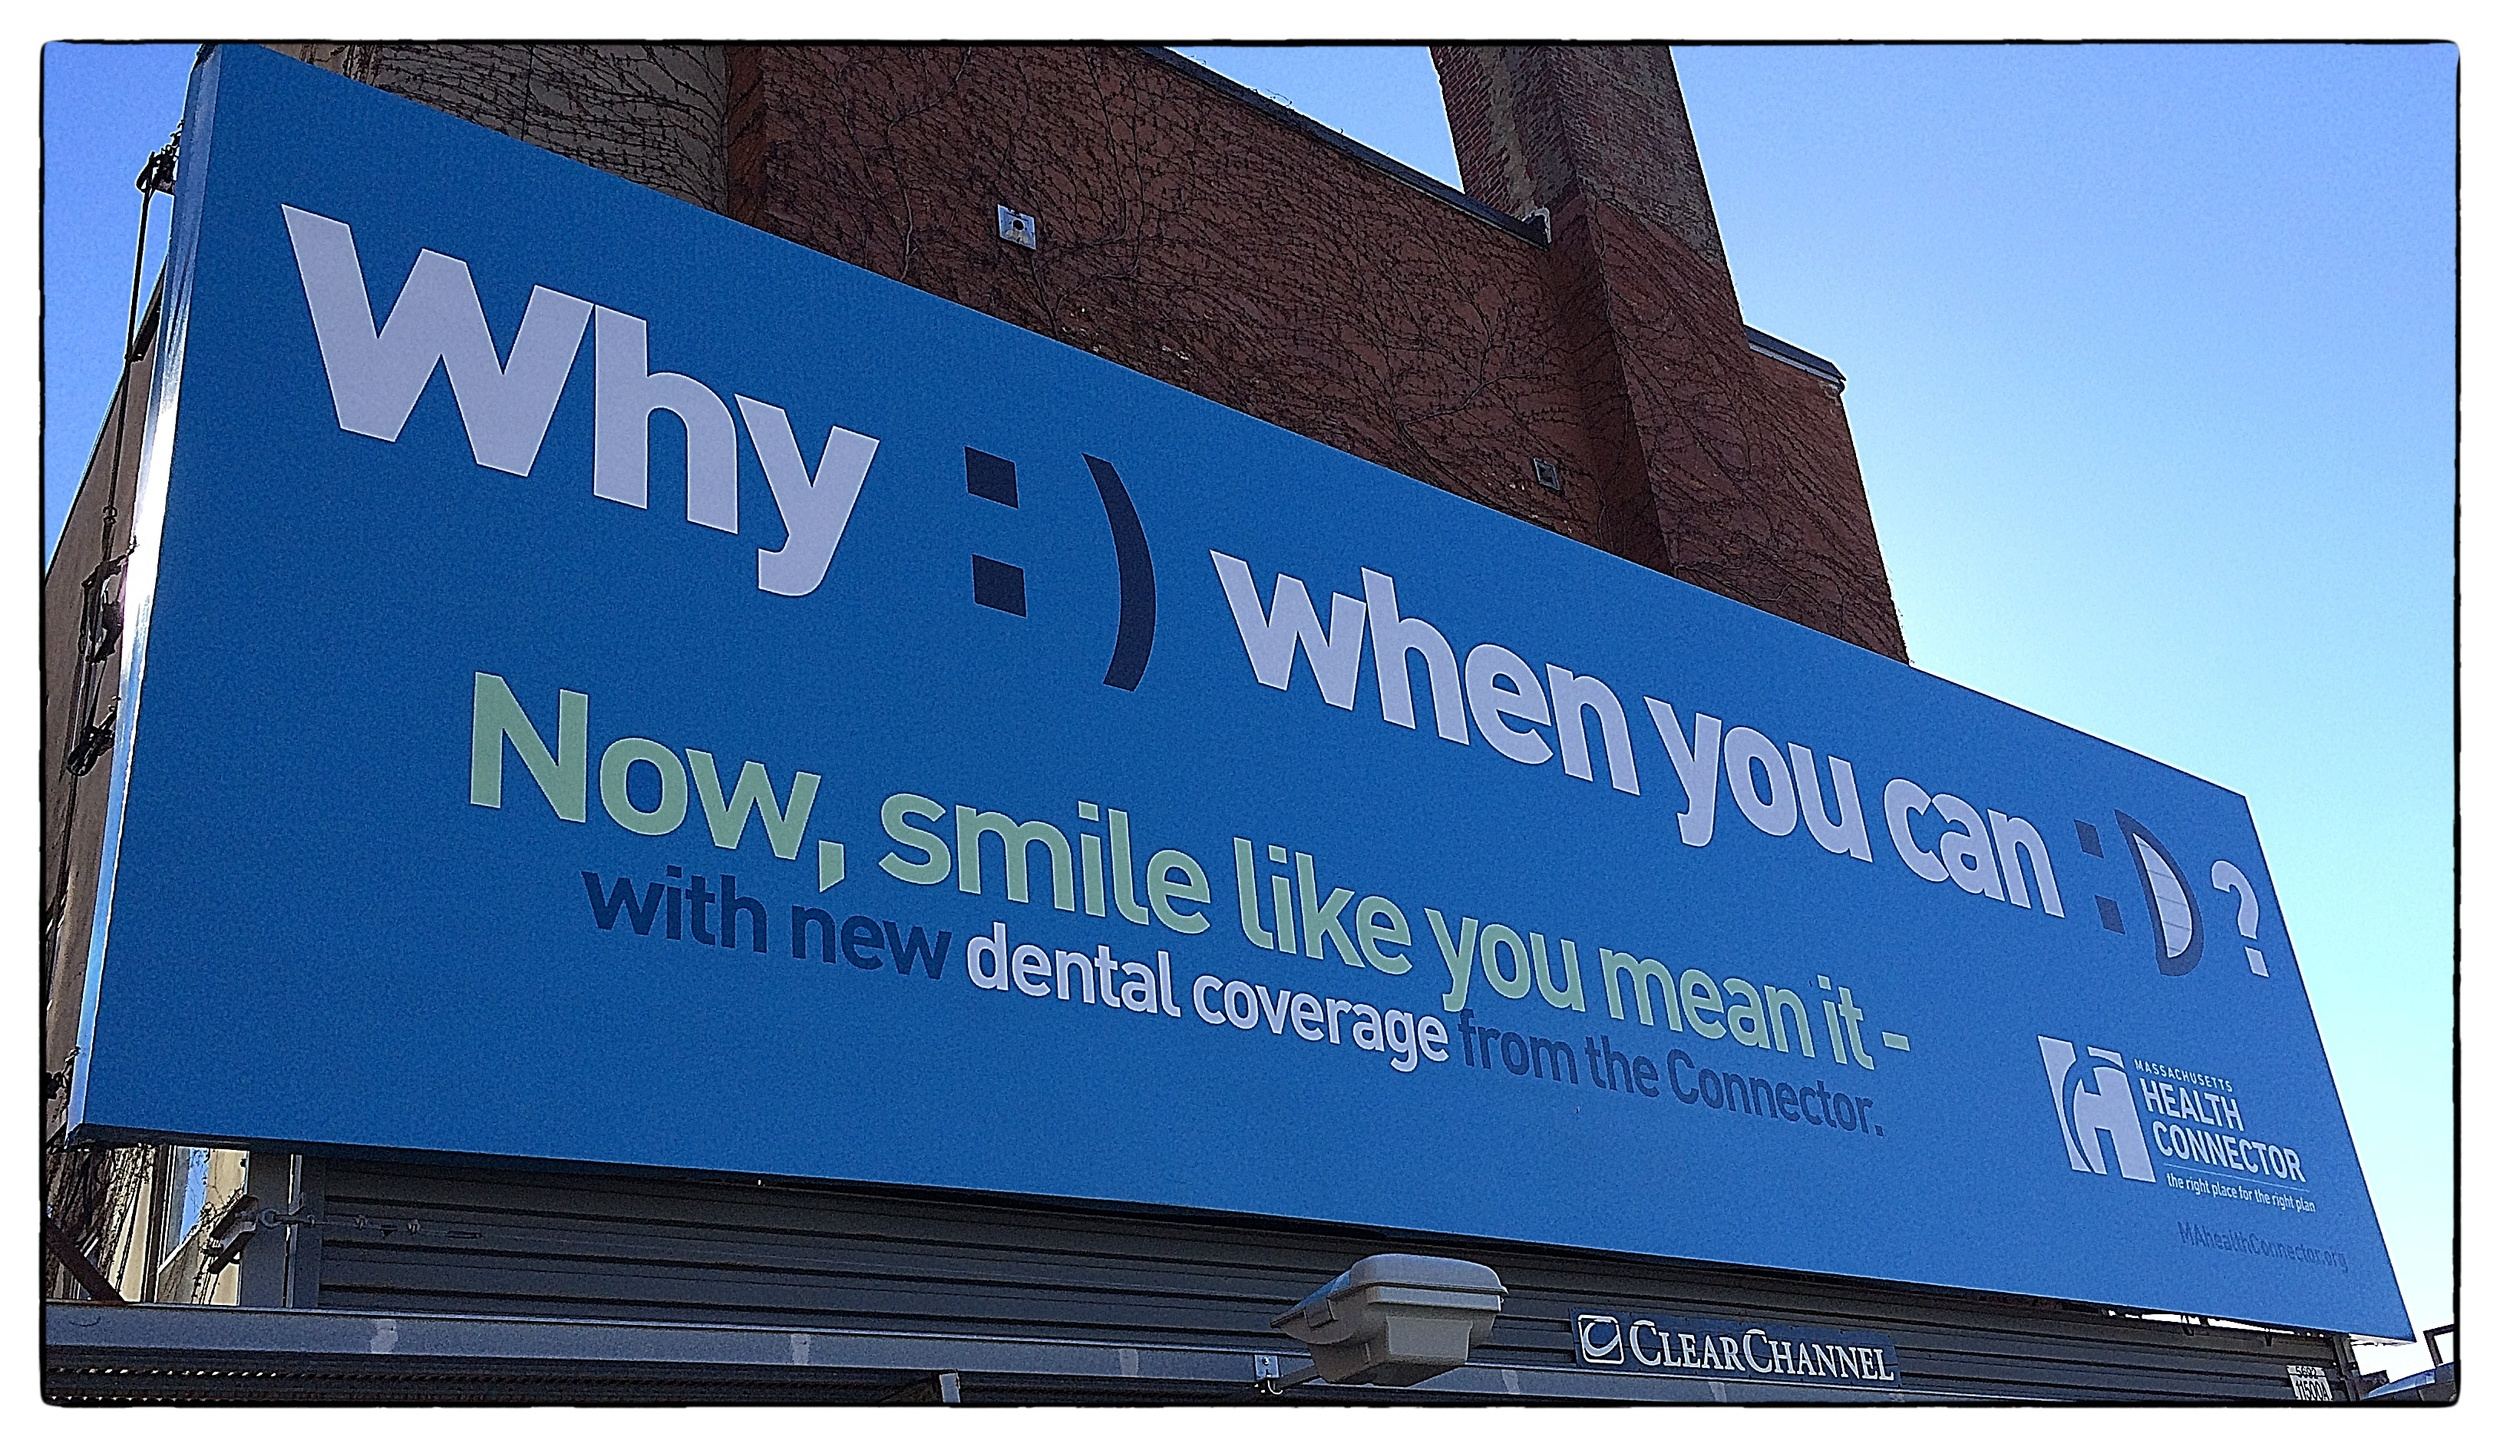 Billboard at the corner of Dorchester Avenue and West 4th Street in South Boston, shot on November 19, 2013.